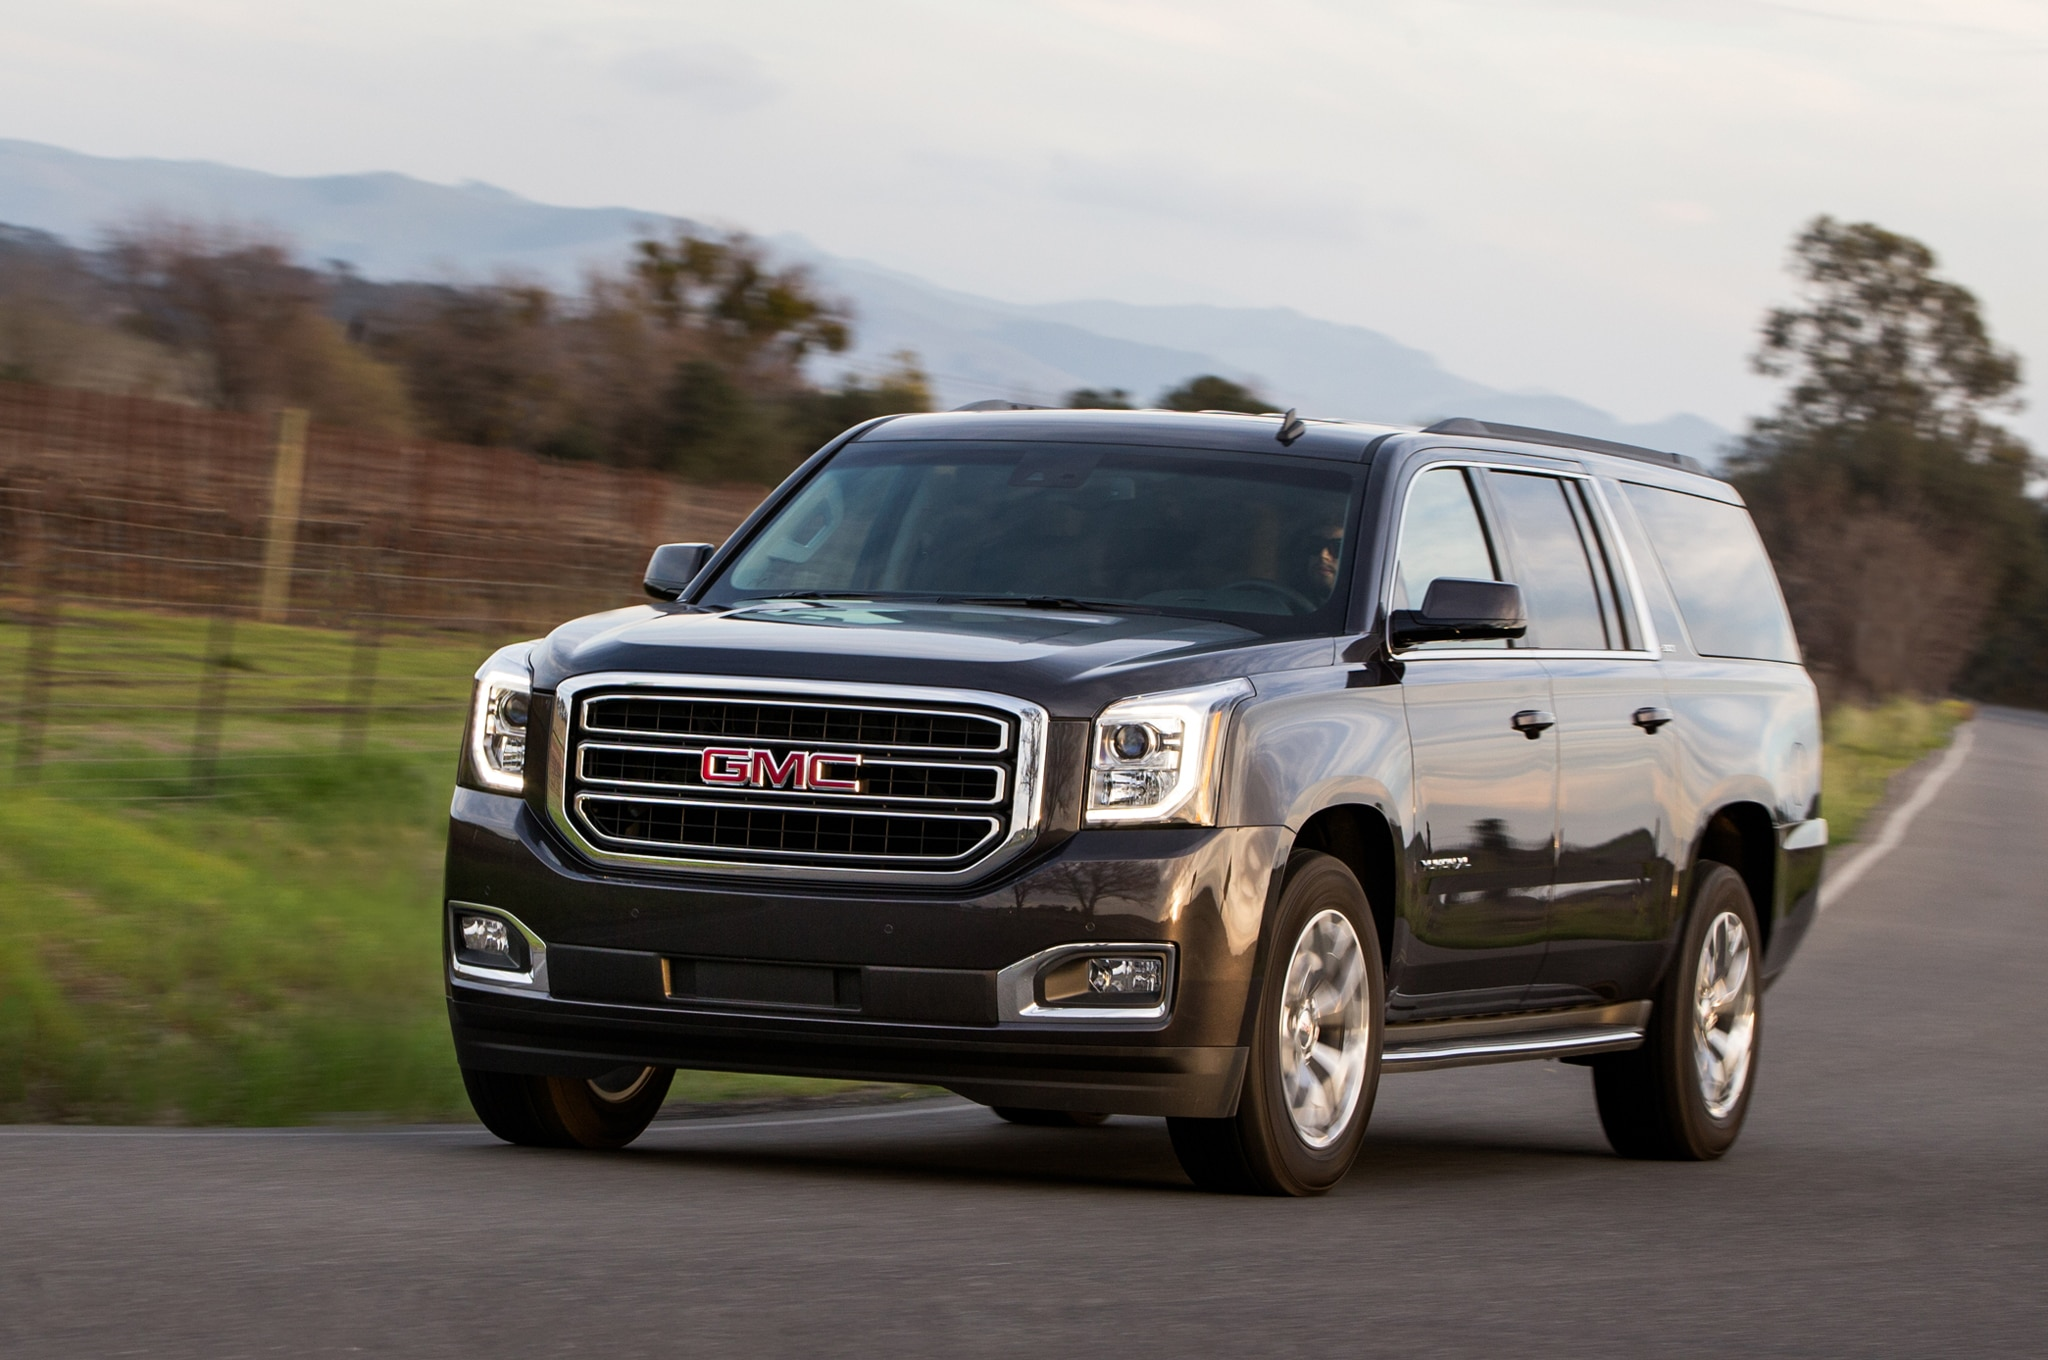 yukon specs us denali xl gmc napa suburban yukonxl feb en pages news yukondenali specifications